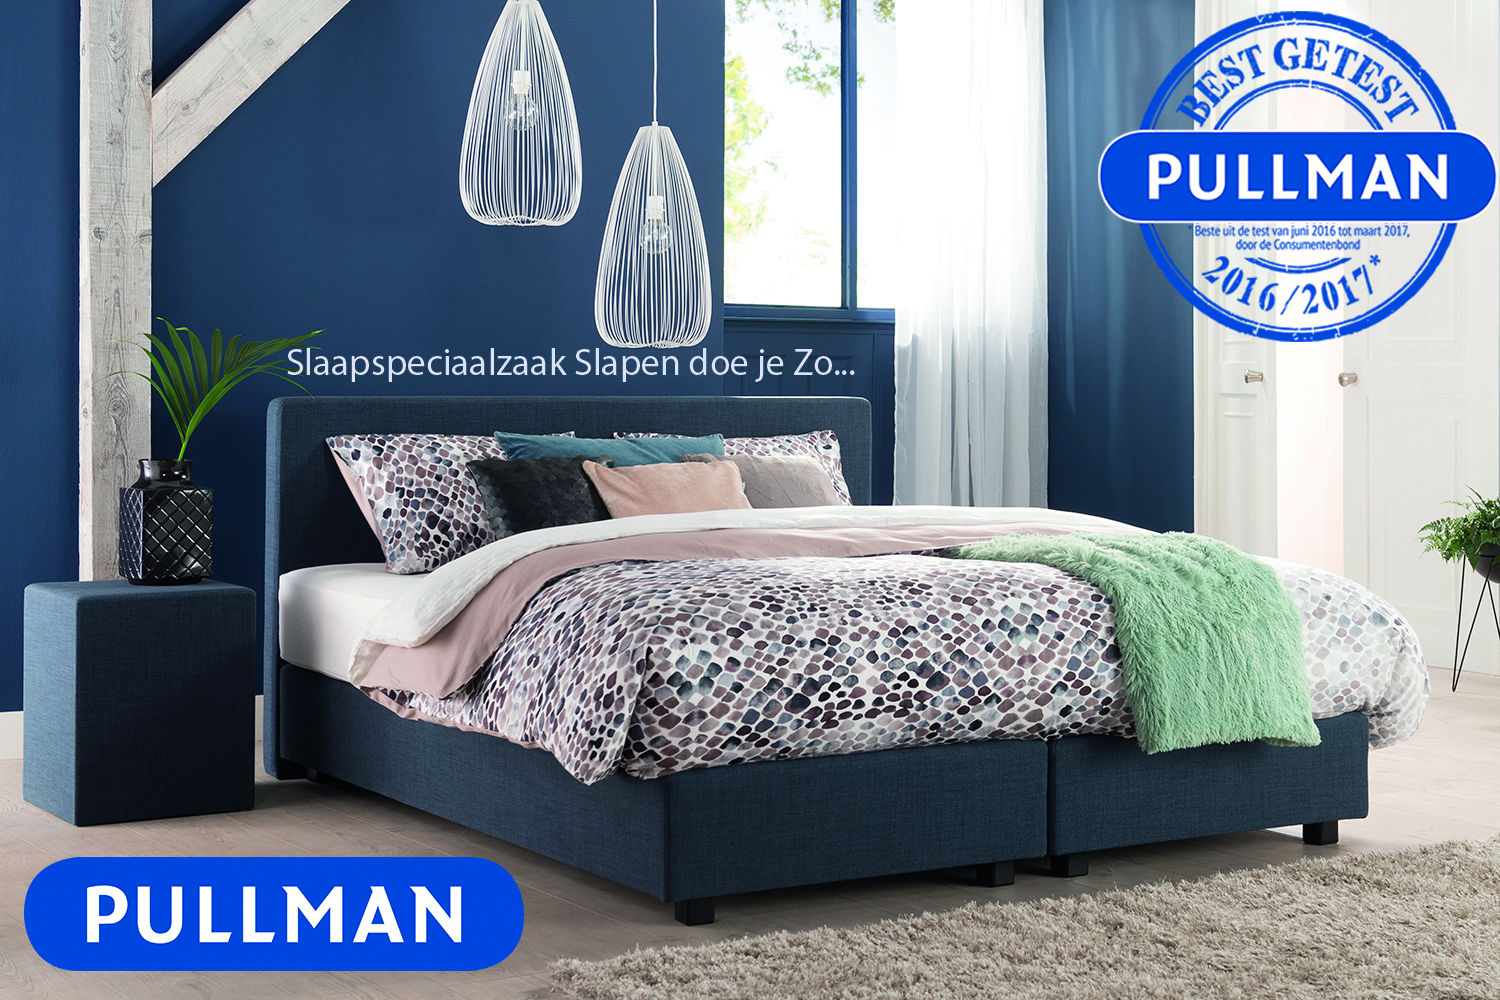 Pullman outlet rotterdam